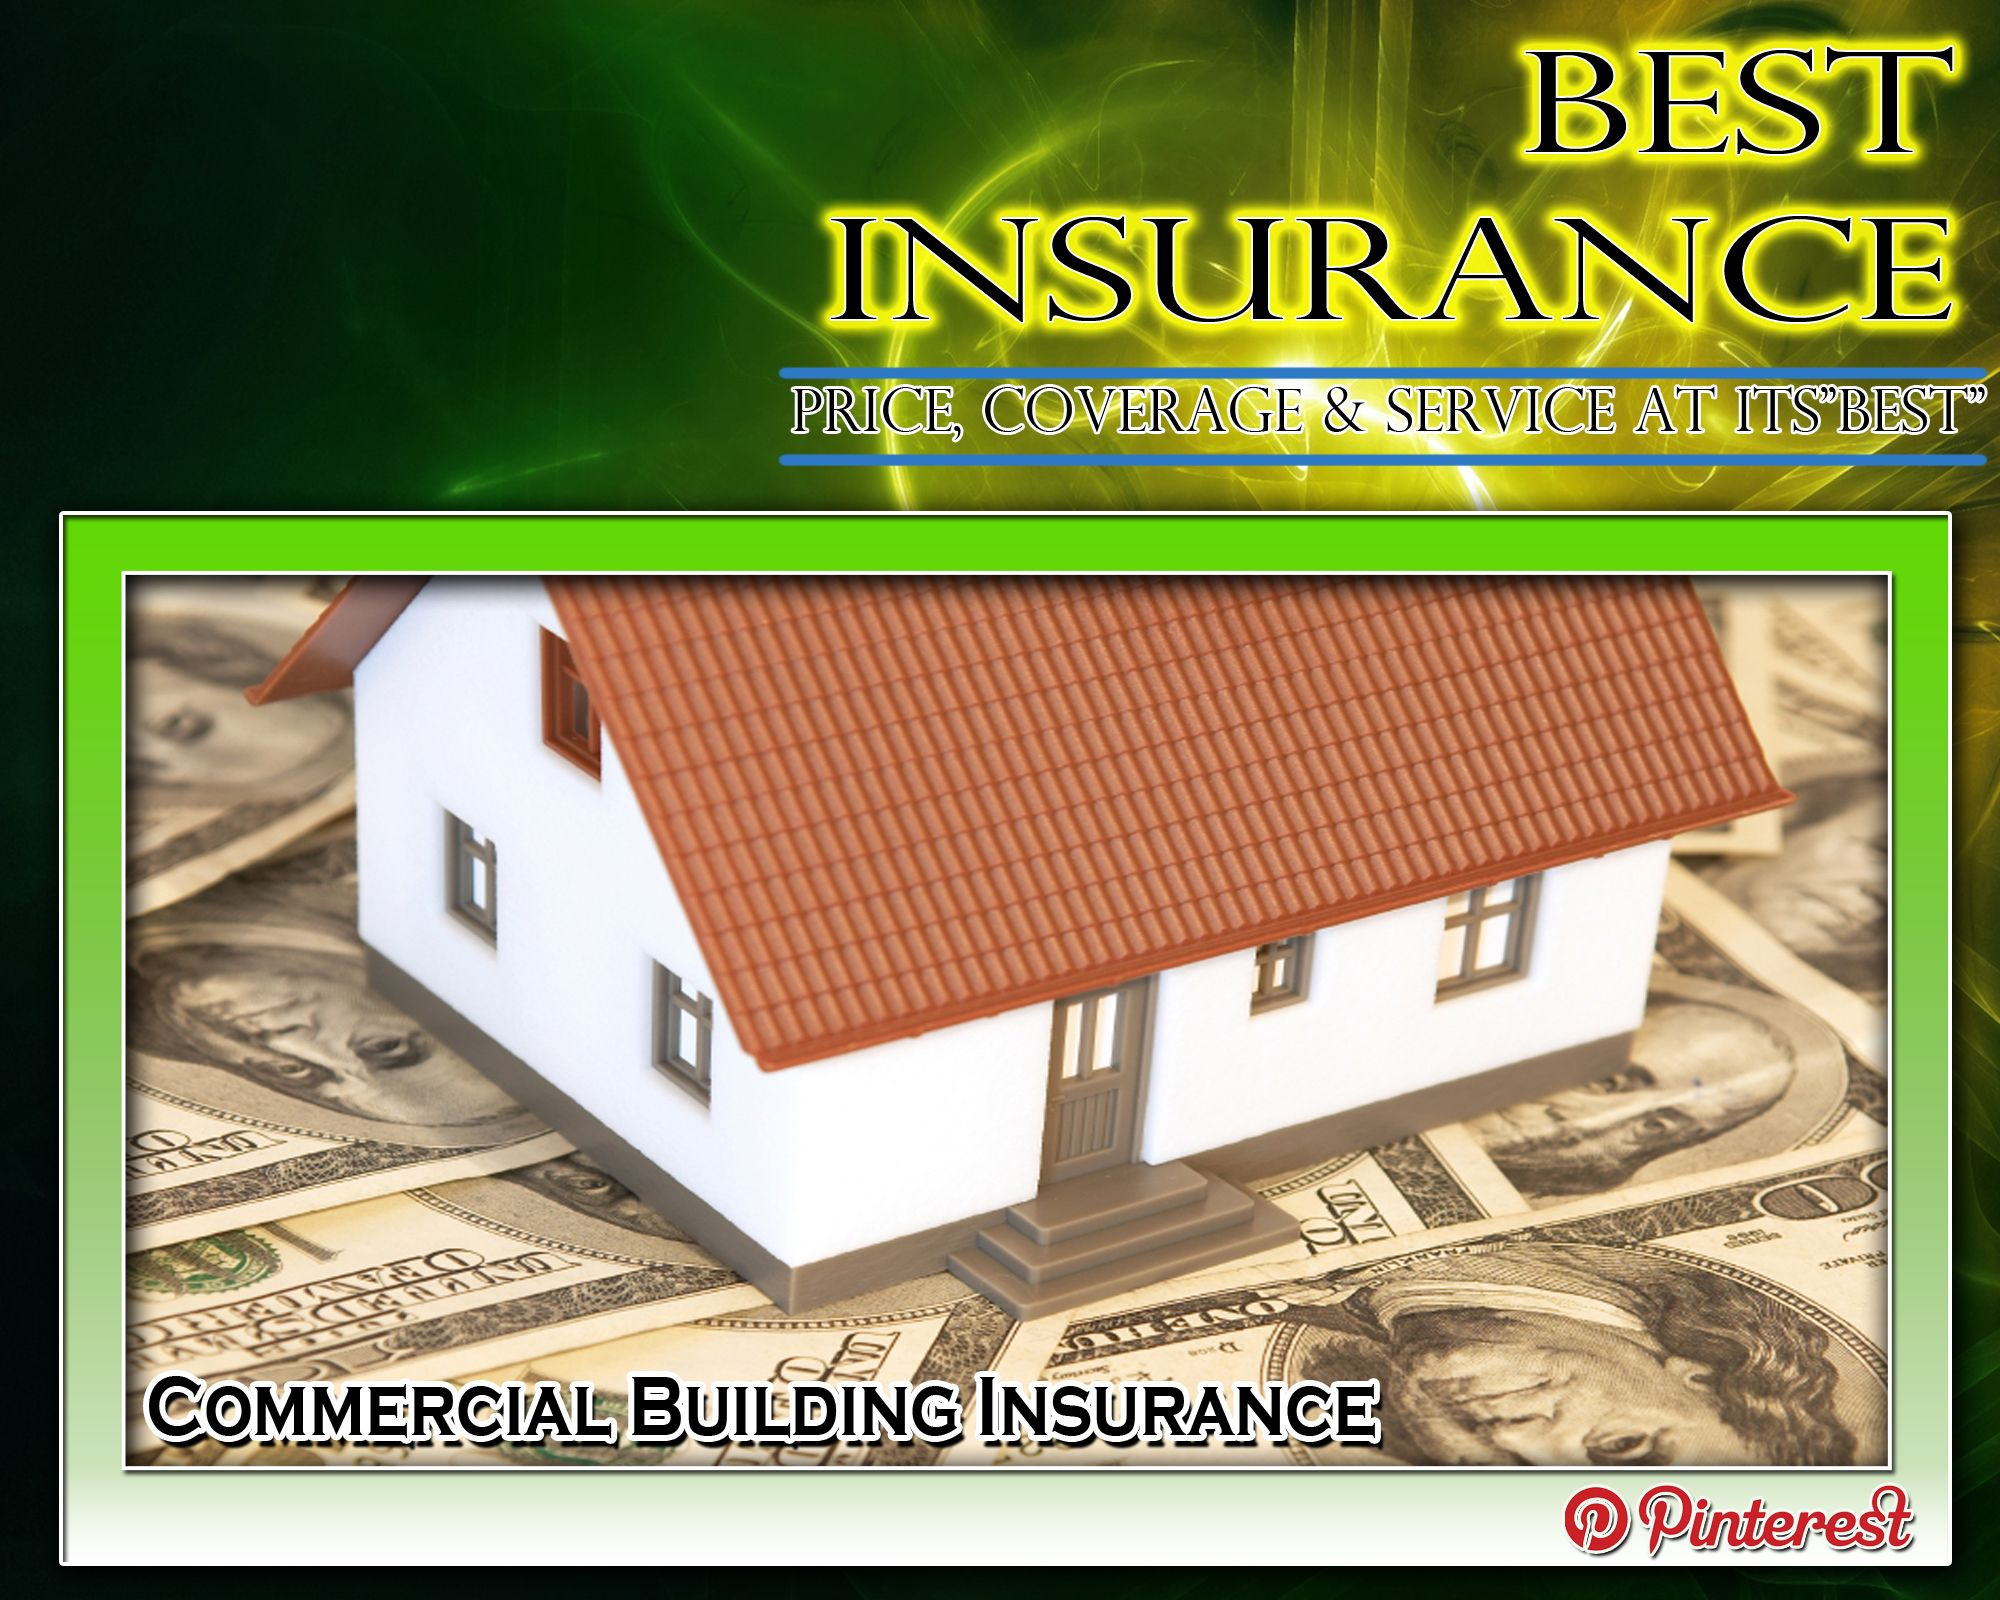 Automobileinsuranceft Lauderdale Commercial Building Insurance Building Insurance Best Insurance Insurance Prices